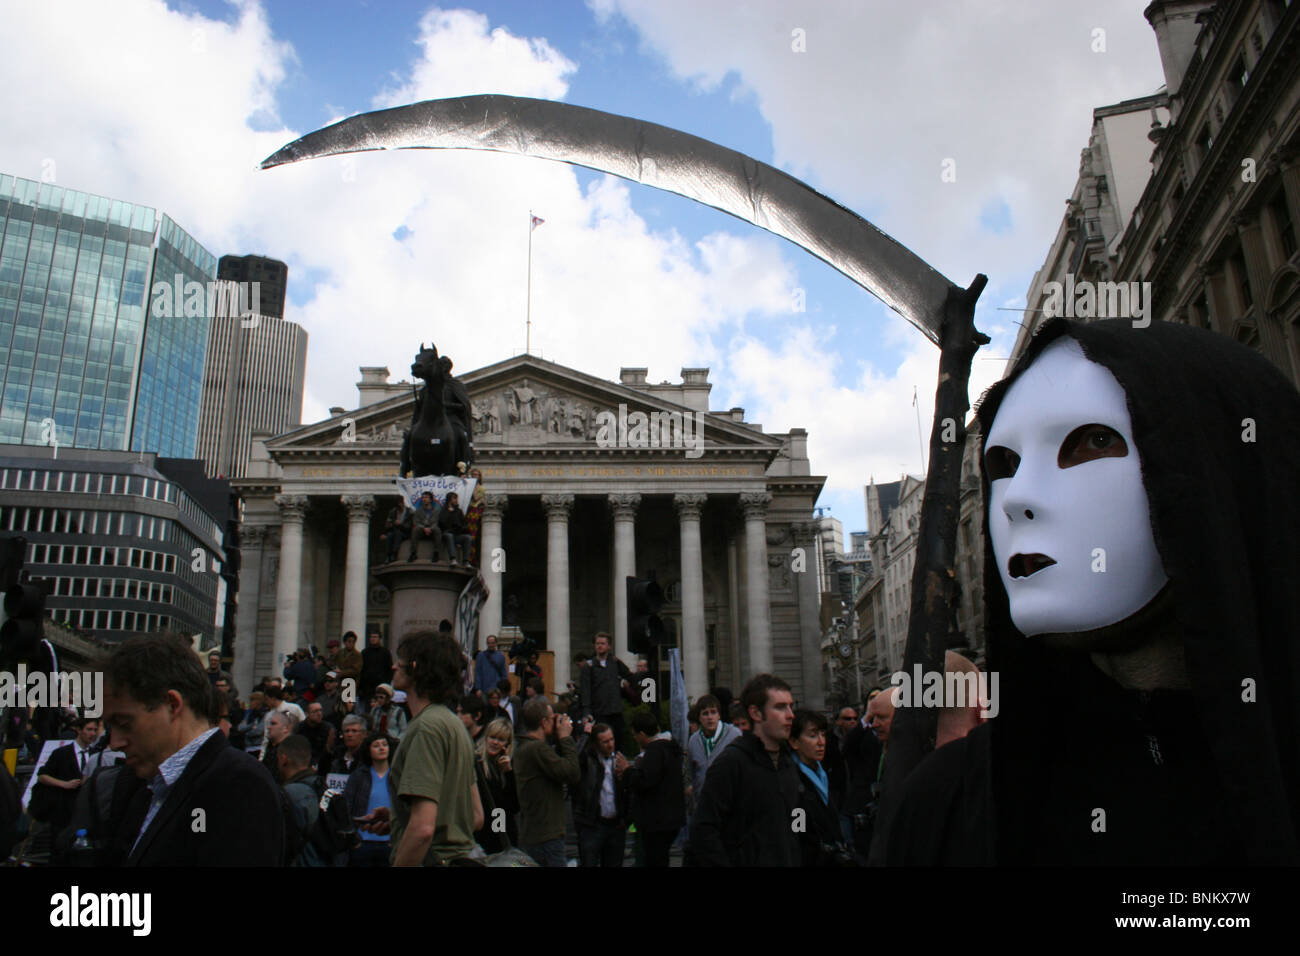 Protester dressed as the grim reaper with sythe over The Bank of England during G20 protests, London, UK - Stock Image